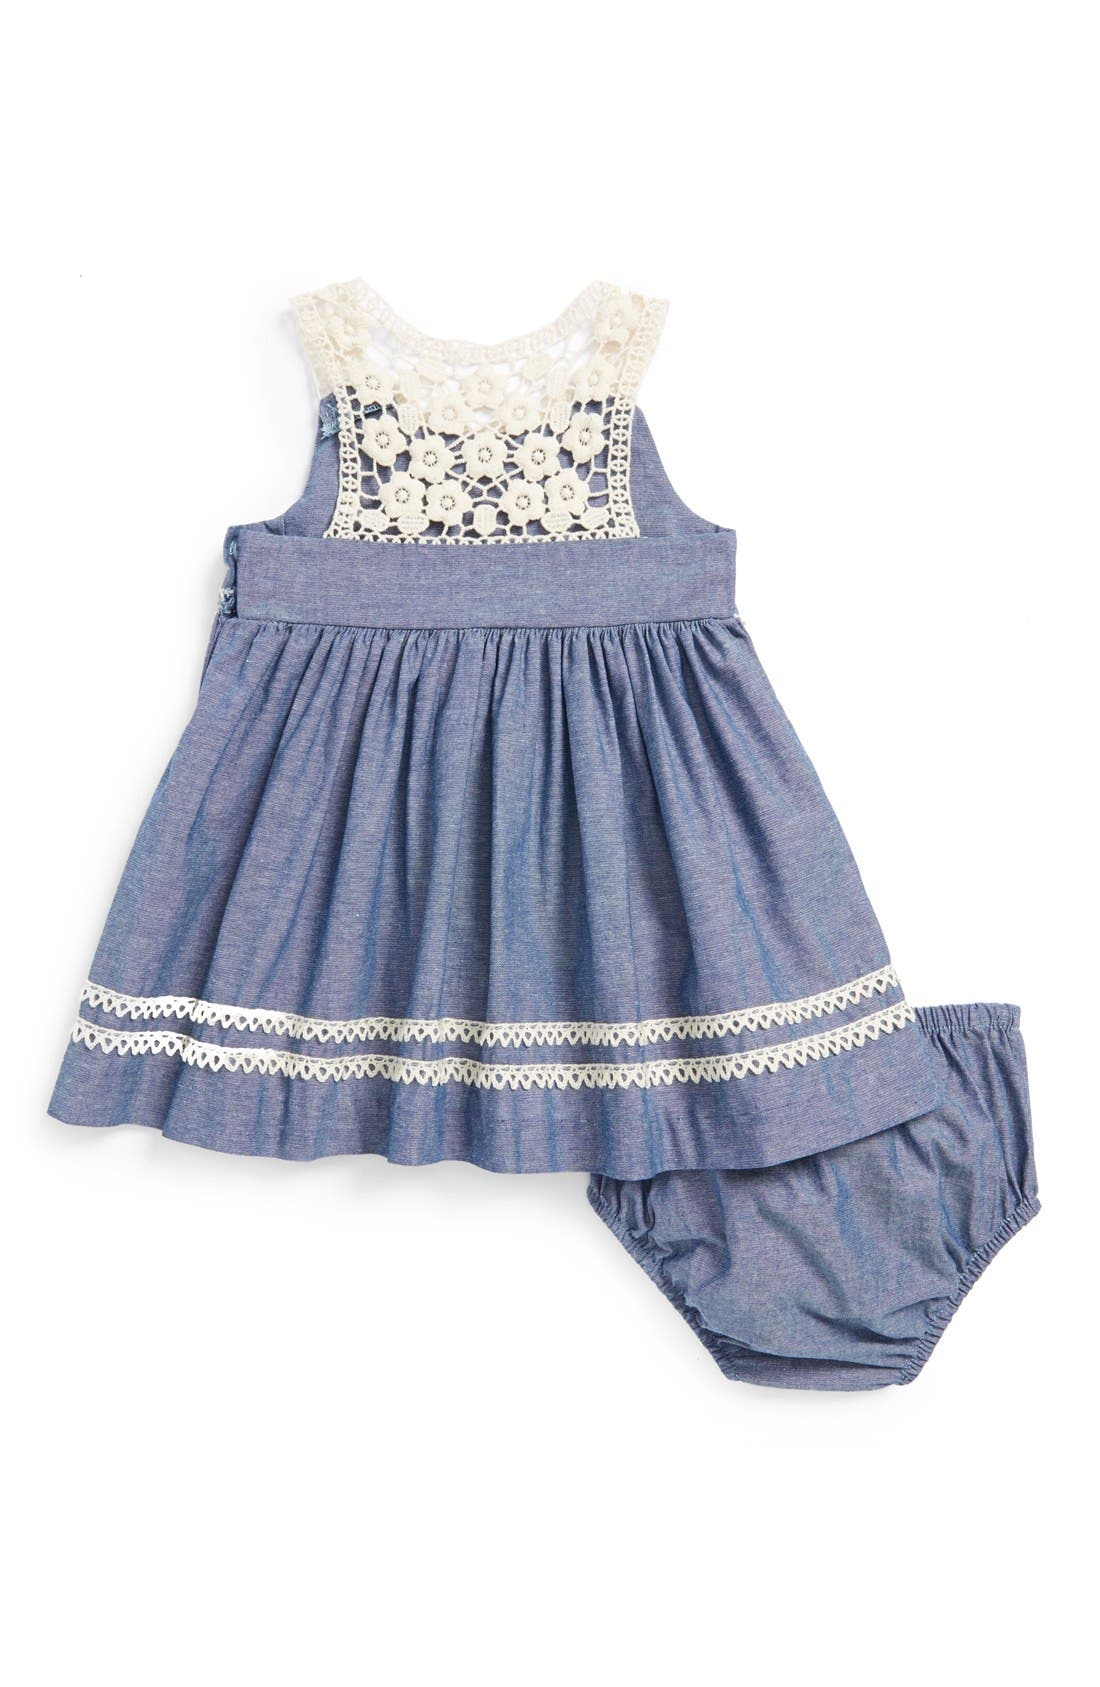 Chambray Dress & Bloomers,                             Alternate thumbnail 2, color,                             400